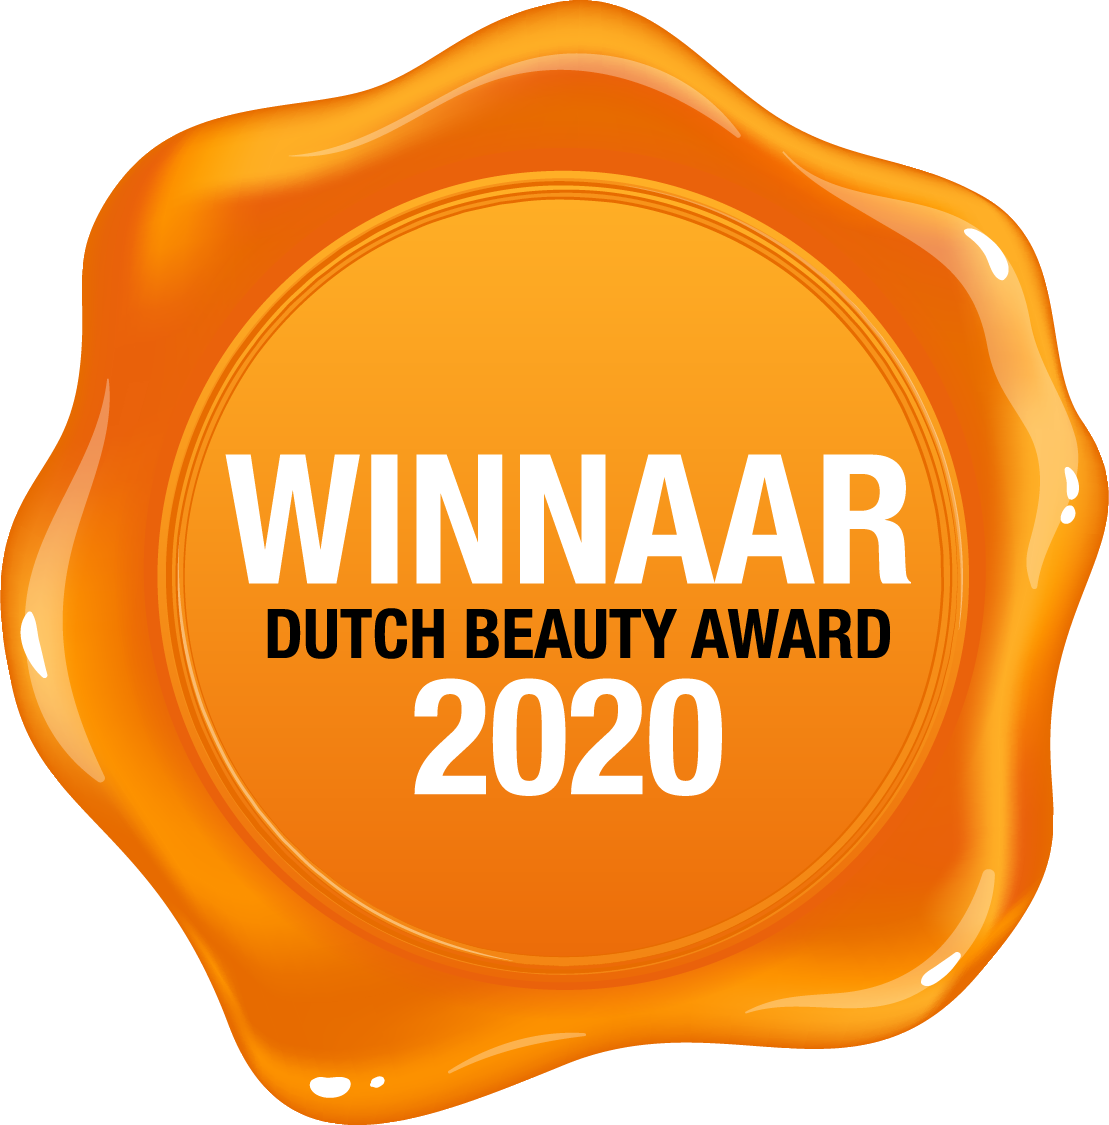 Winnaar Dutch Beauty Awards 2020